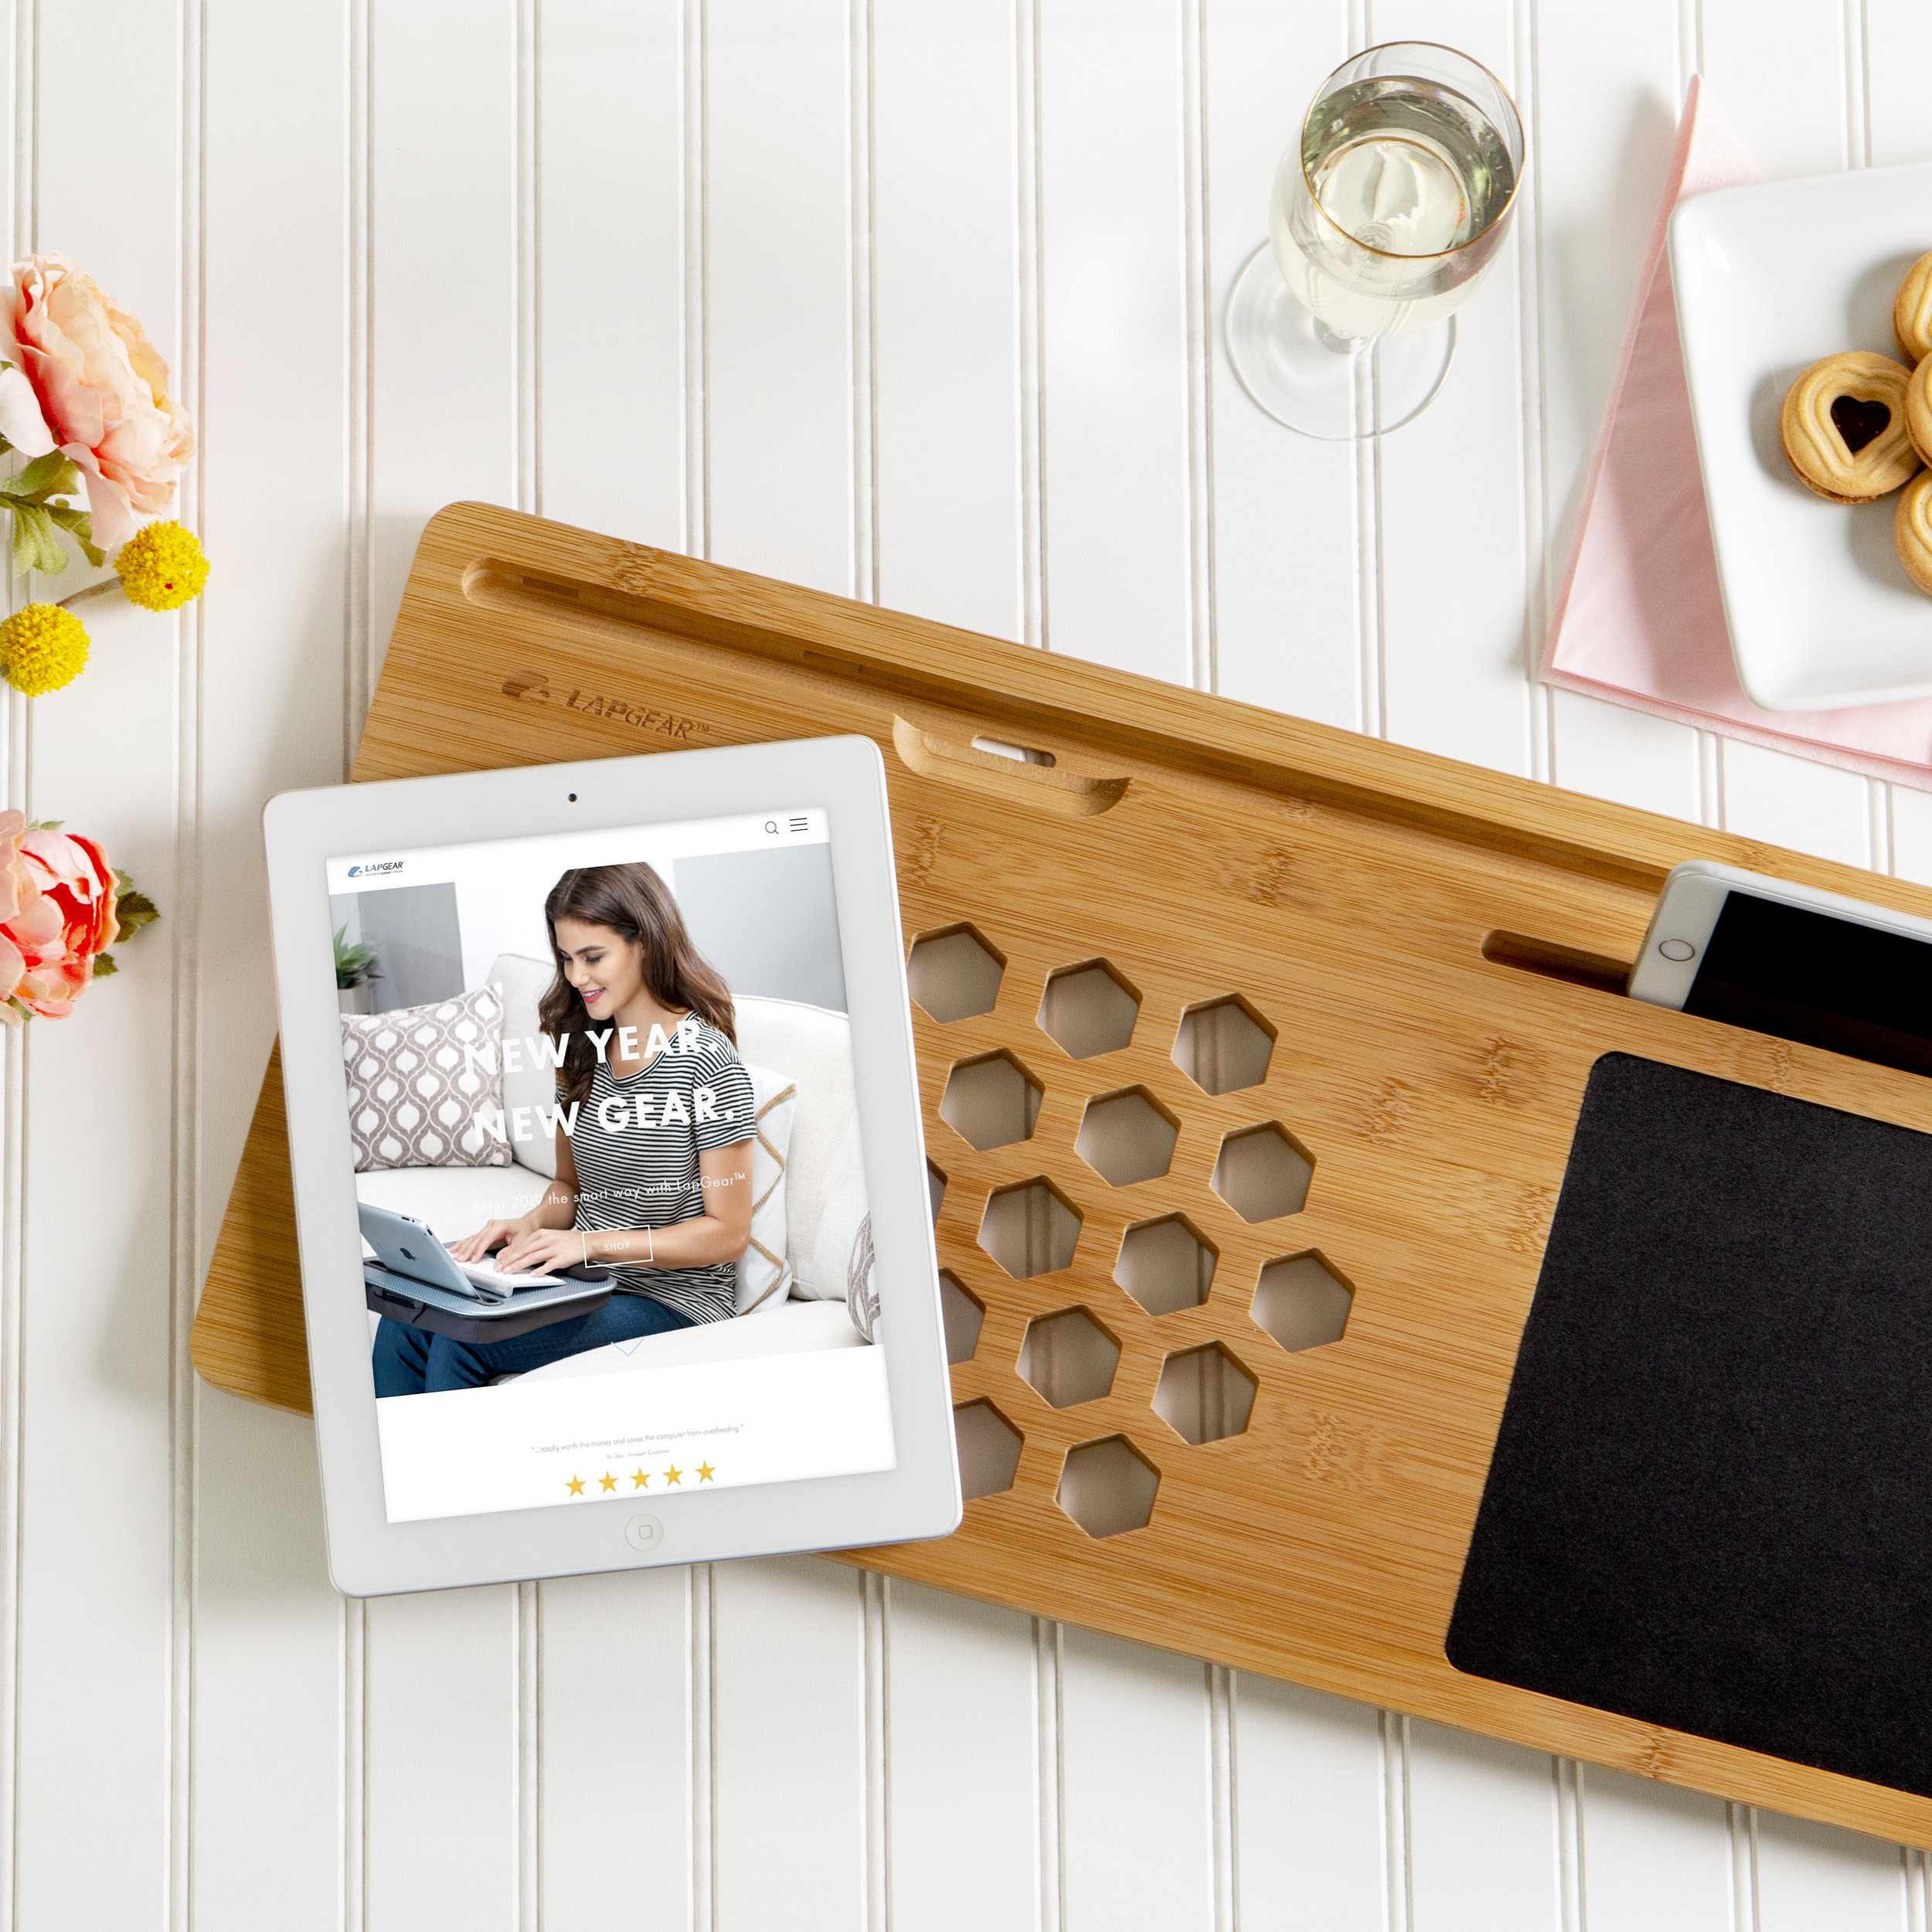 """BAMBOARD   $29.99   FITS LAPTOPS UP TO 15"""":  22"""" x 11""""   MEDIA SLOTS : Fits tablets up to 13"""" and cell phones up to 7.9""""   STYLE : Made from natural bamboo (a renewable resource)   IMPROVED AIR-FLOW : 29 ventilation holes allow for proper laptop ventilation, as recommended by laptop manufacturers."""